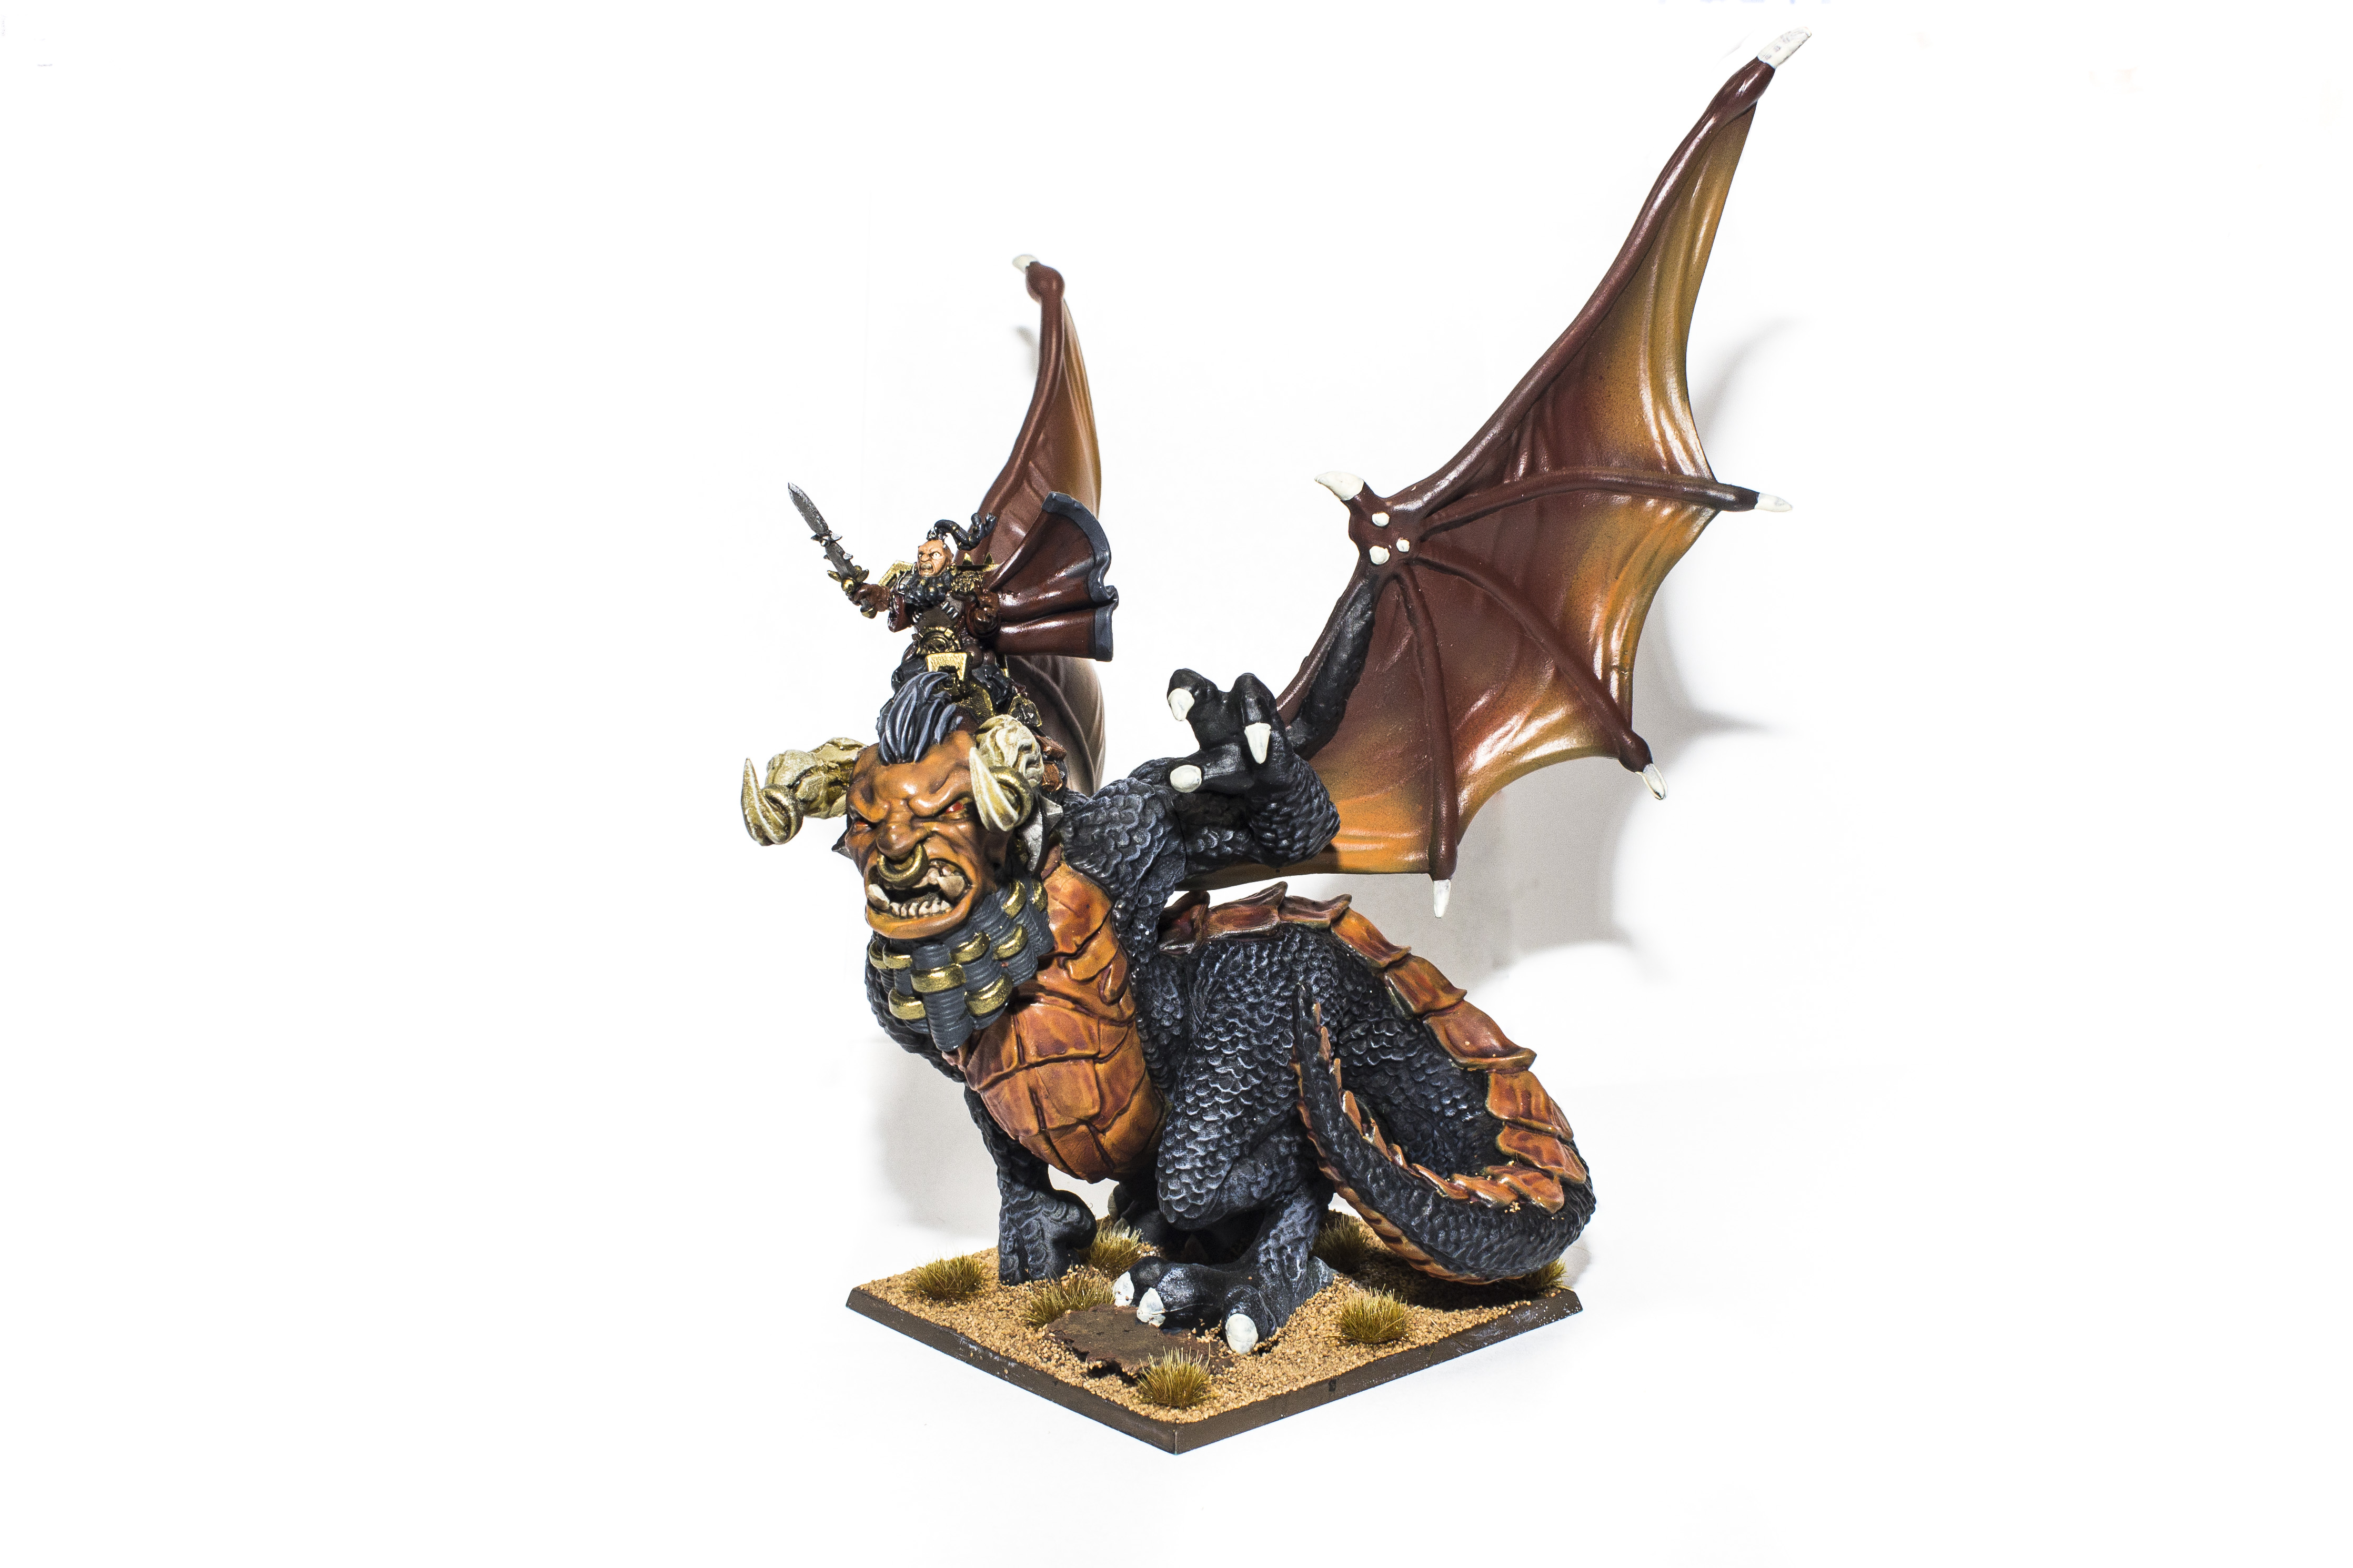 Abyssal_Dwarves_Supreme_Iron_Caster_On_Great_Winged_Halfbreed